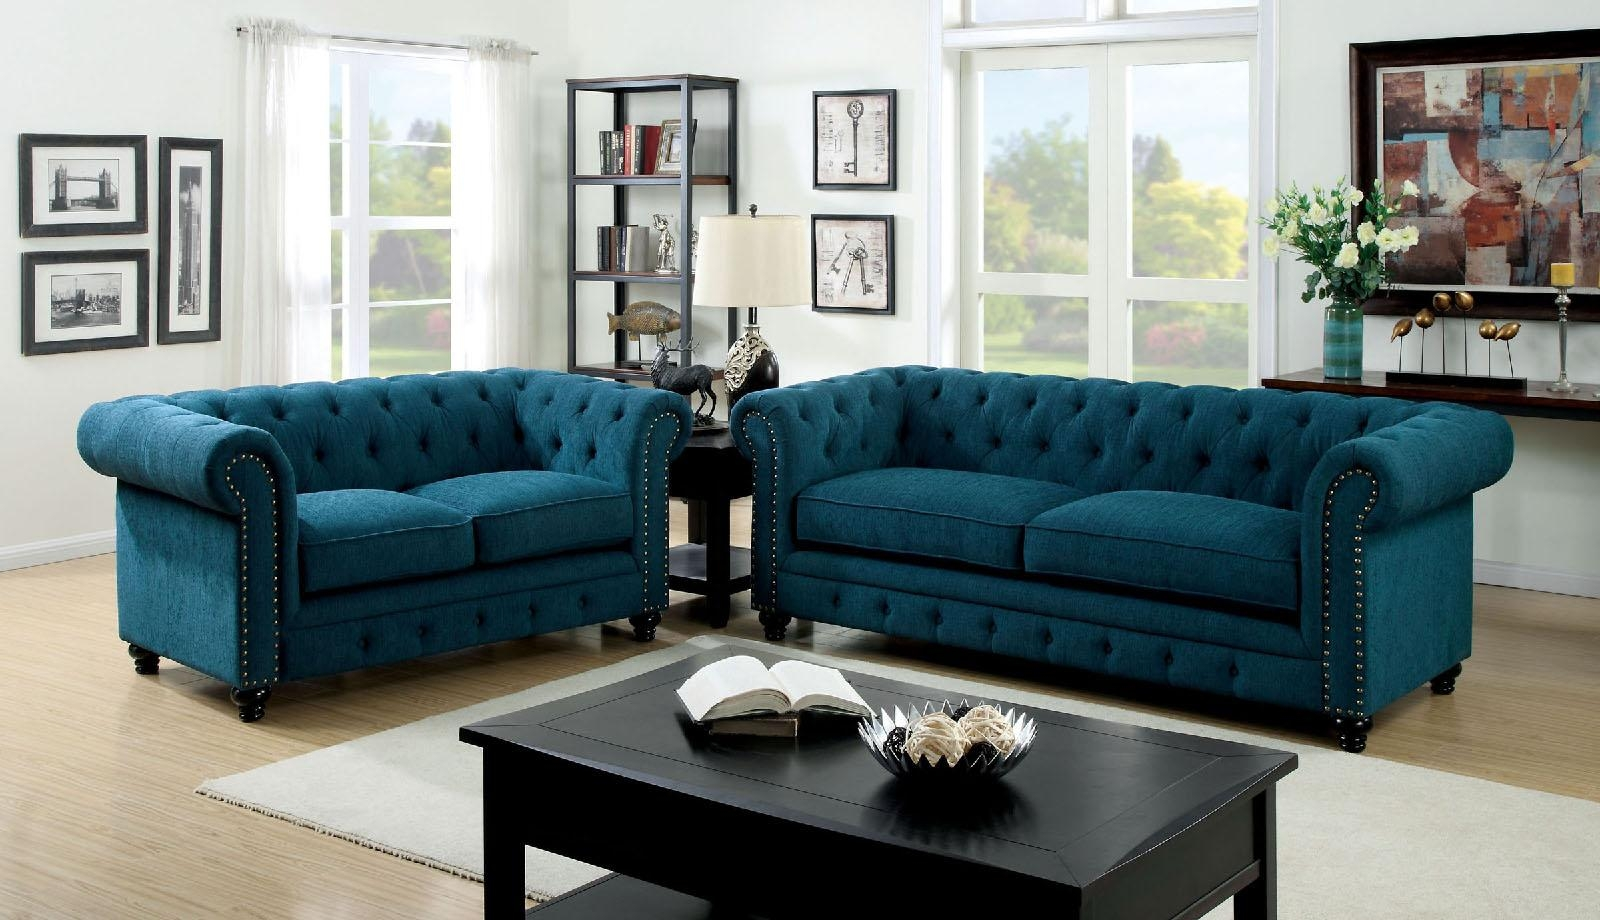 Stanford Blue Tufted Sofa Within Blue Tufted Sofas (View 7 of 22)